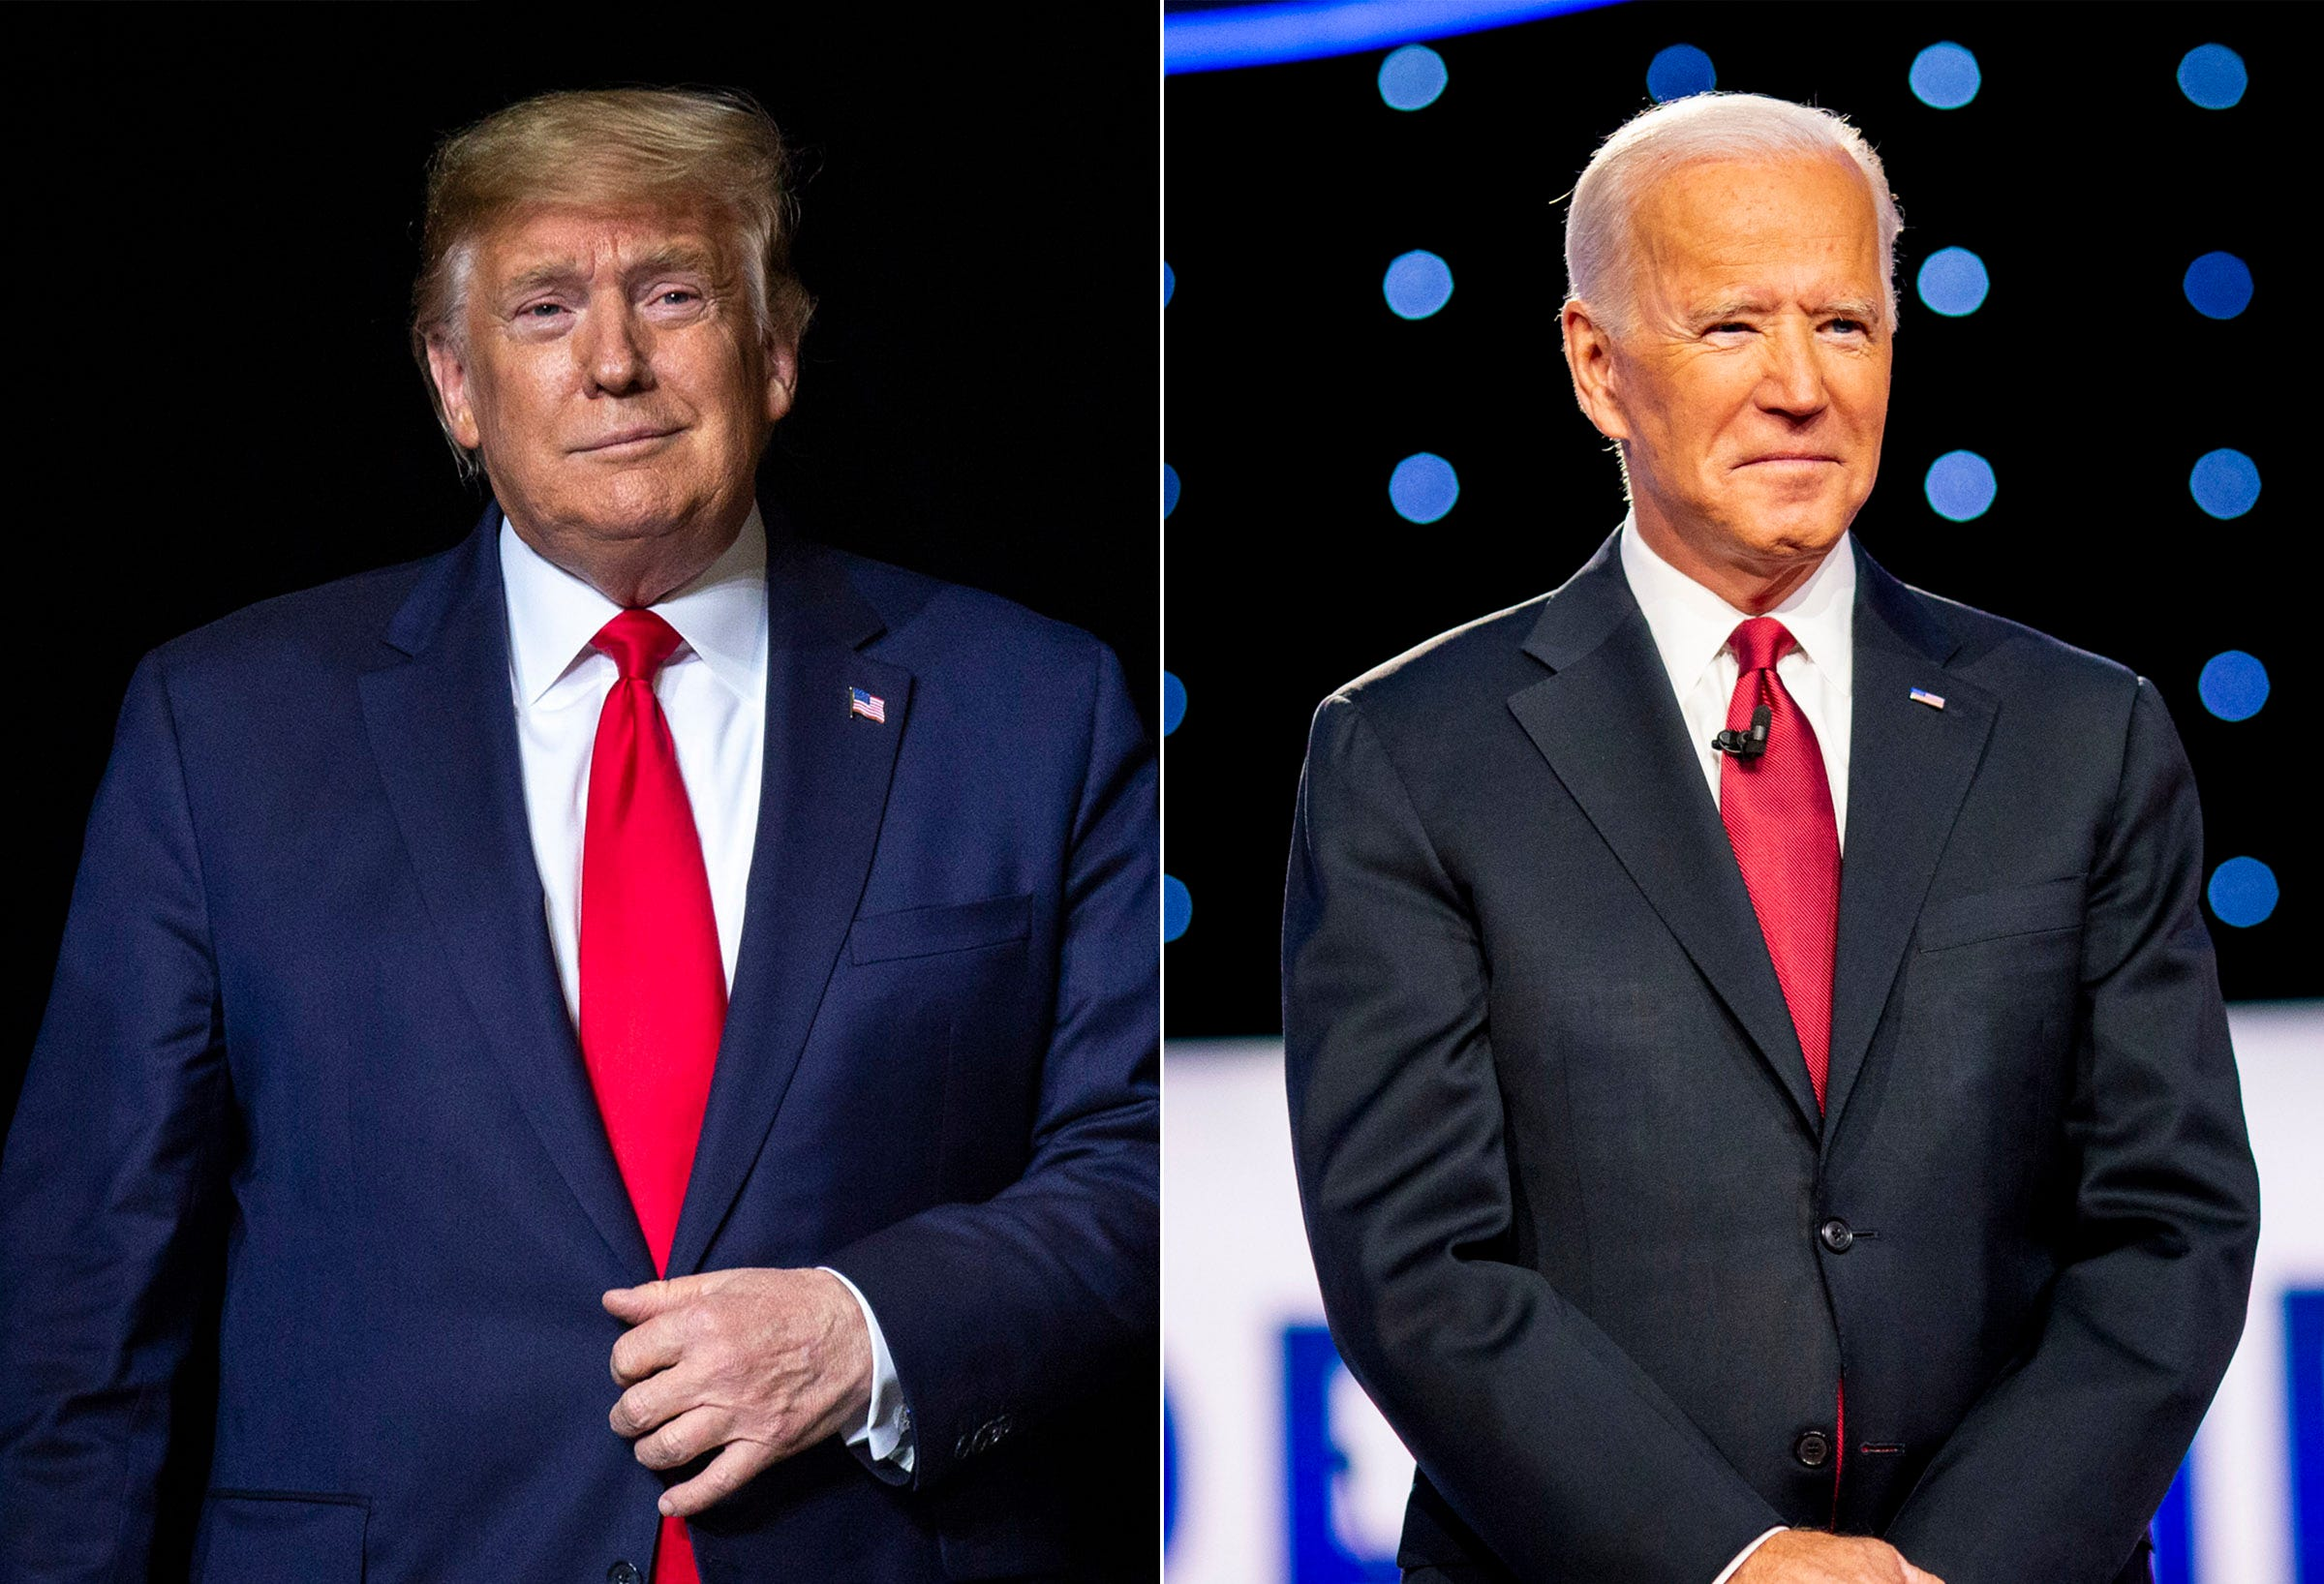 Trump And Biden Released New Ads Ahead Of The US Presidential Election